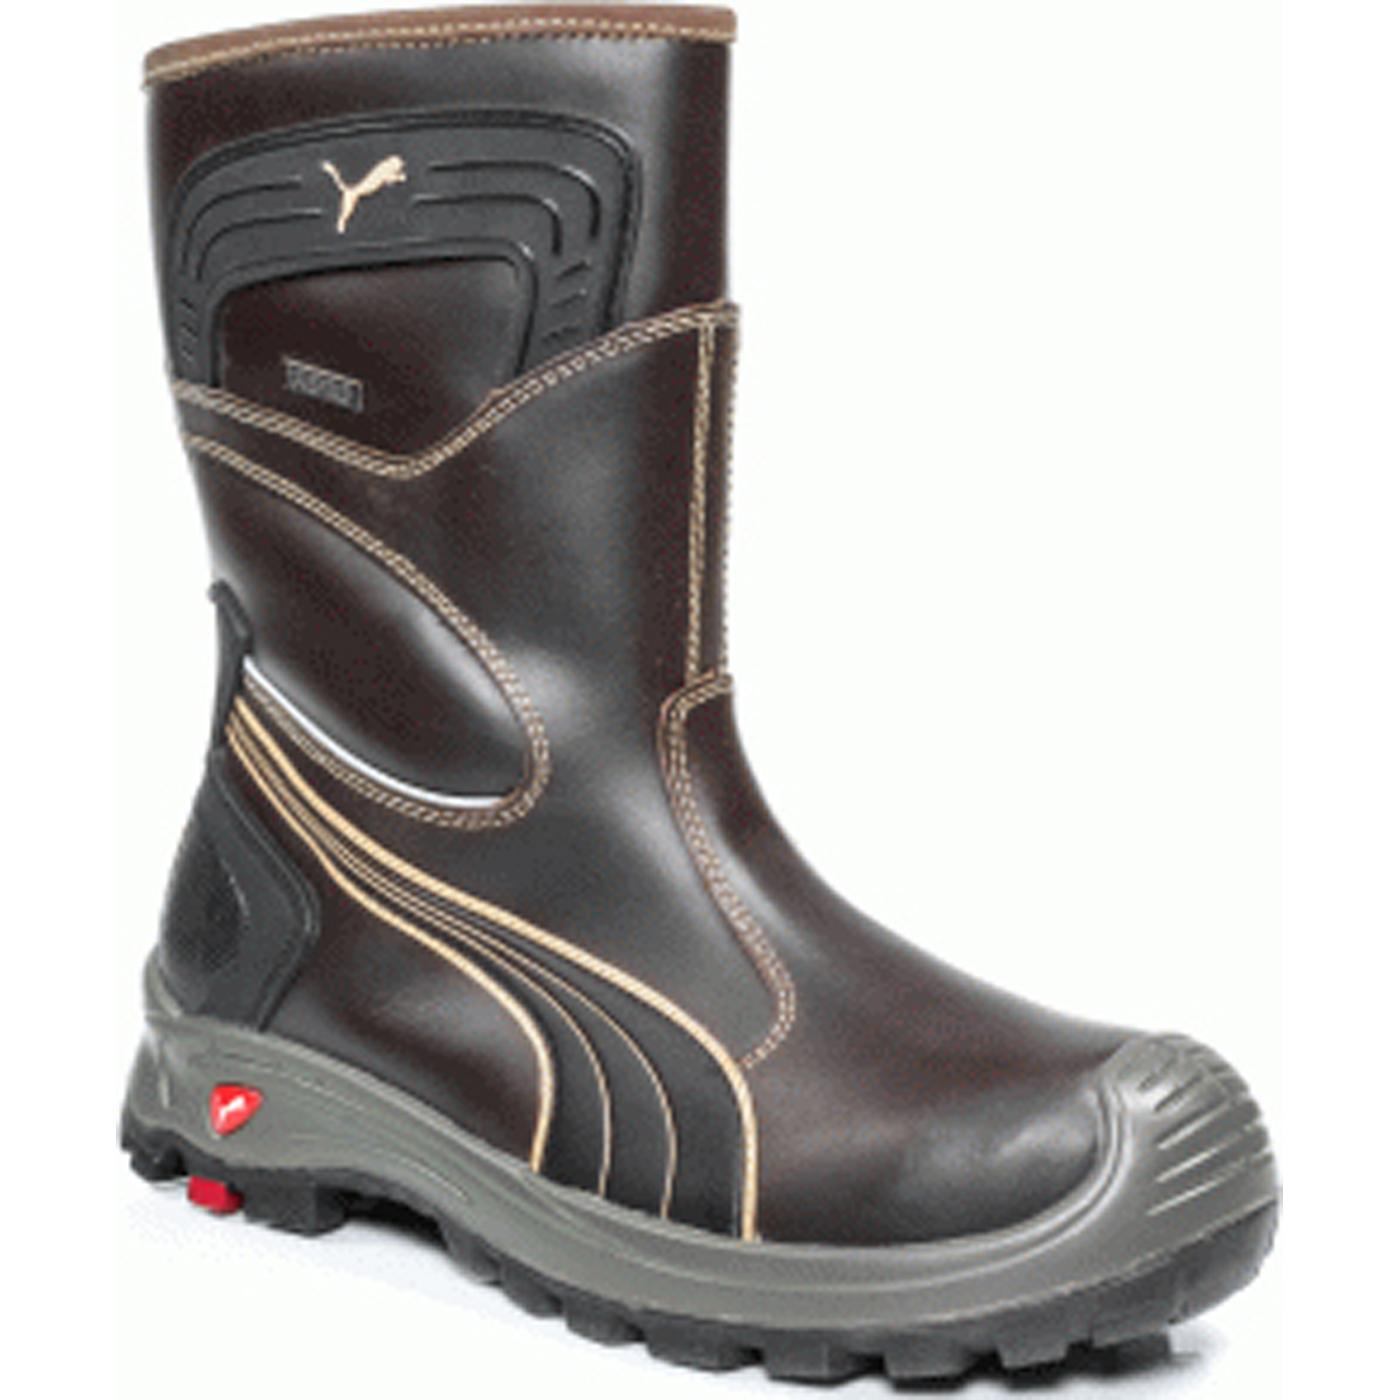 Puma Composite Toe Waterproof Wellington Work Boot P630435